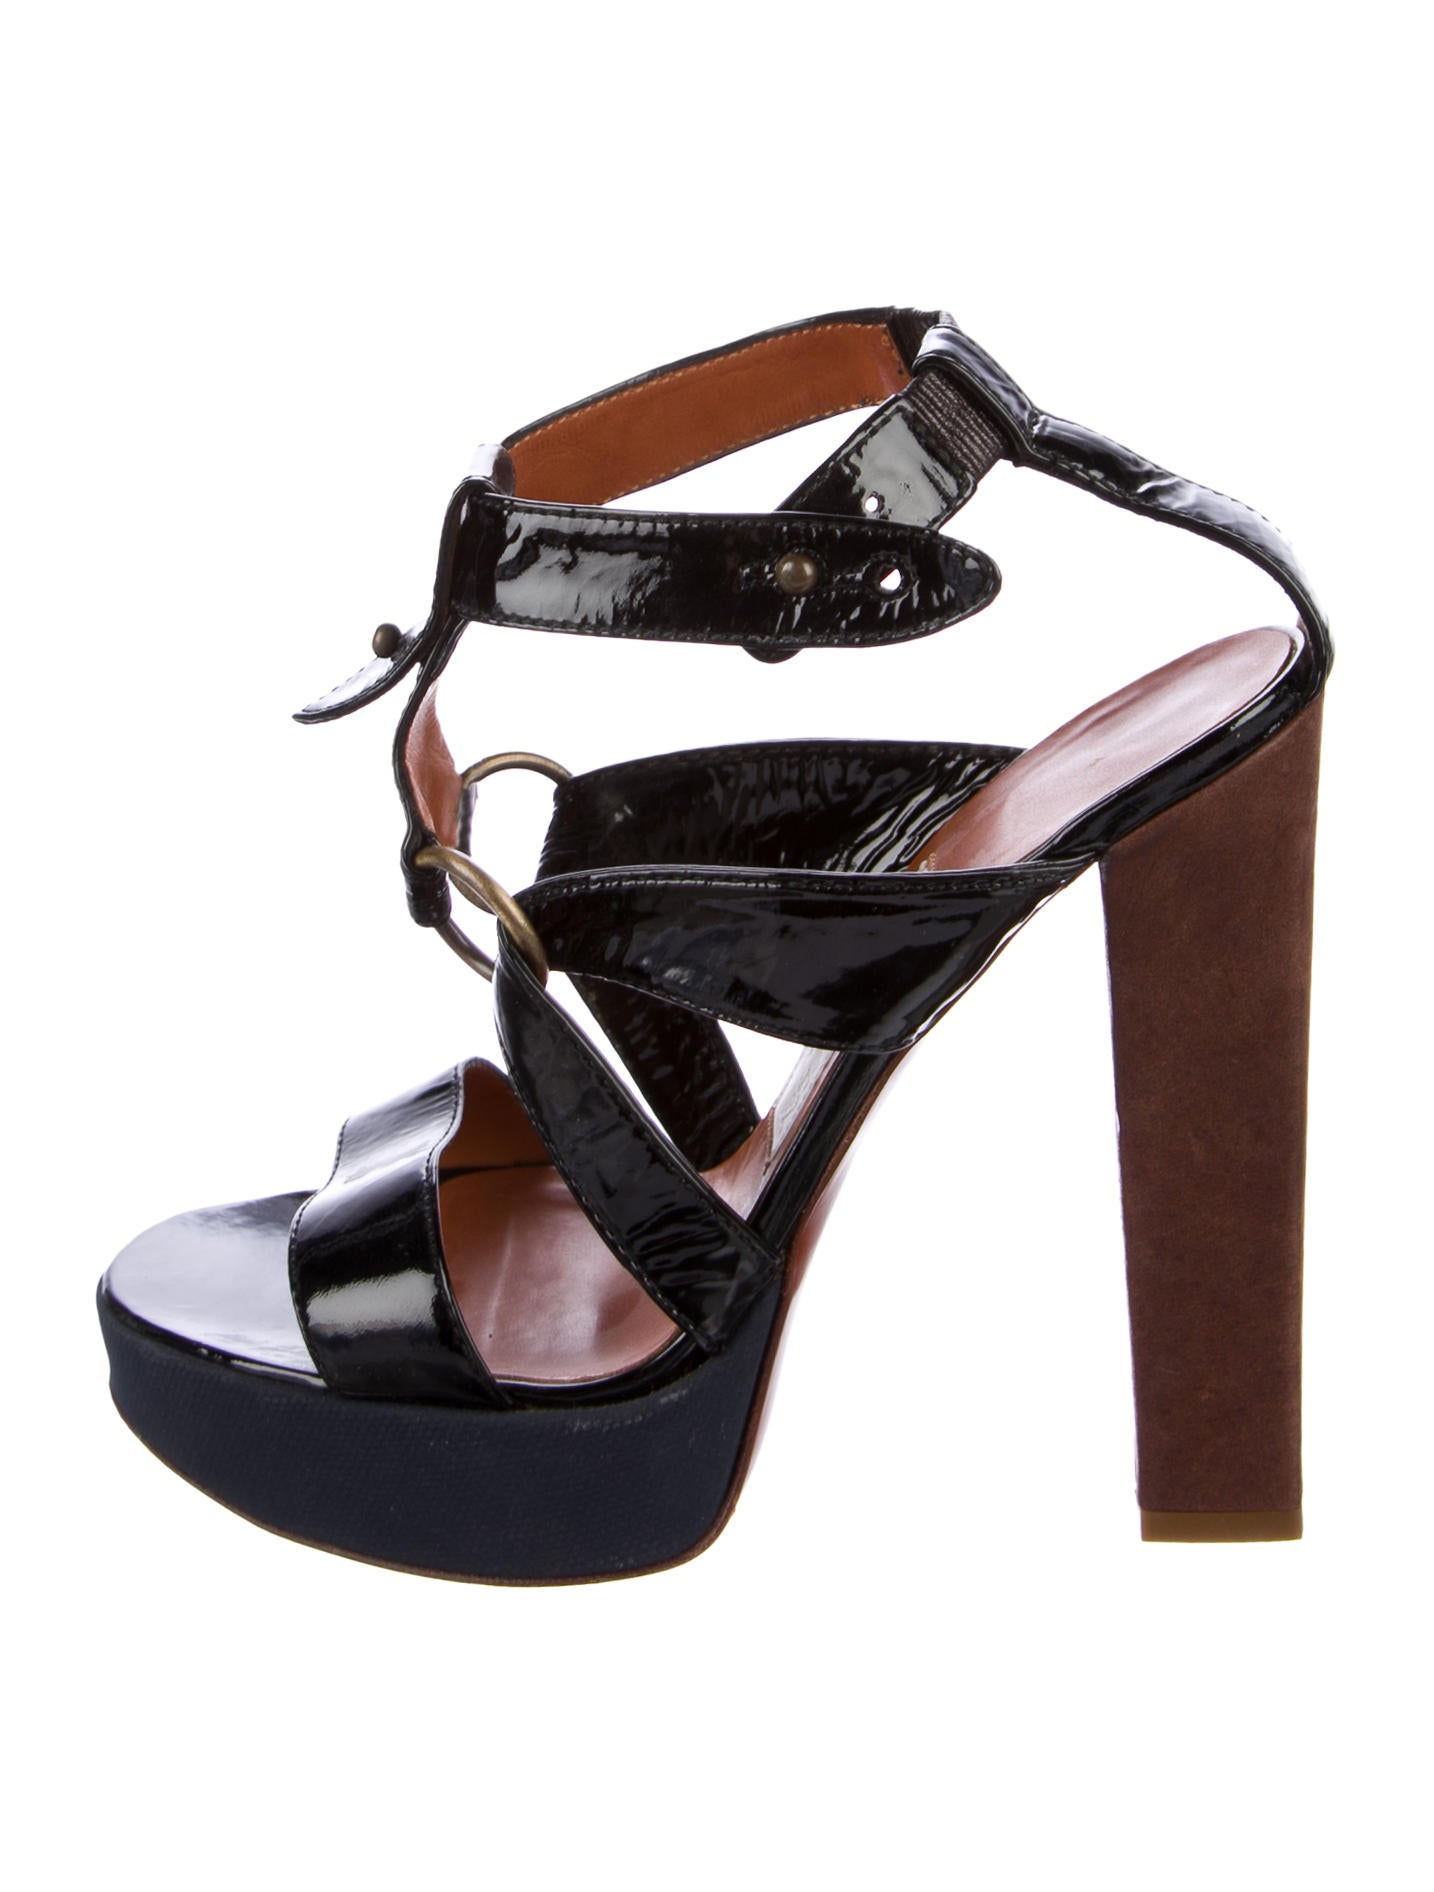 free shipping outlet ebay cheap price Lanvin Patent Leather Multistrap Sandals cheap sale pay with paypal marketable cheap price discount sale online PtV0J3bg1